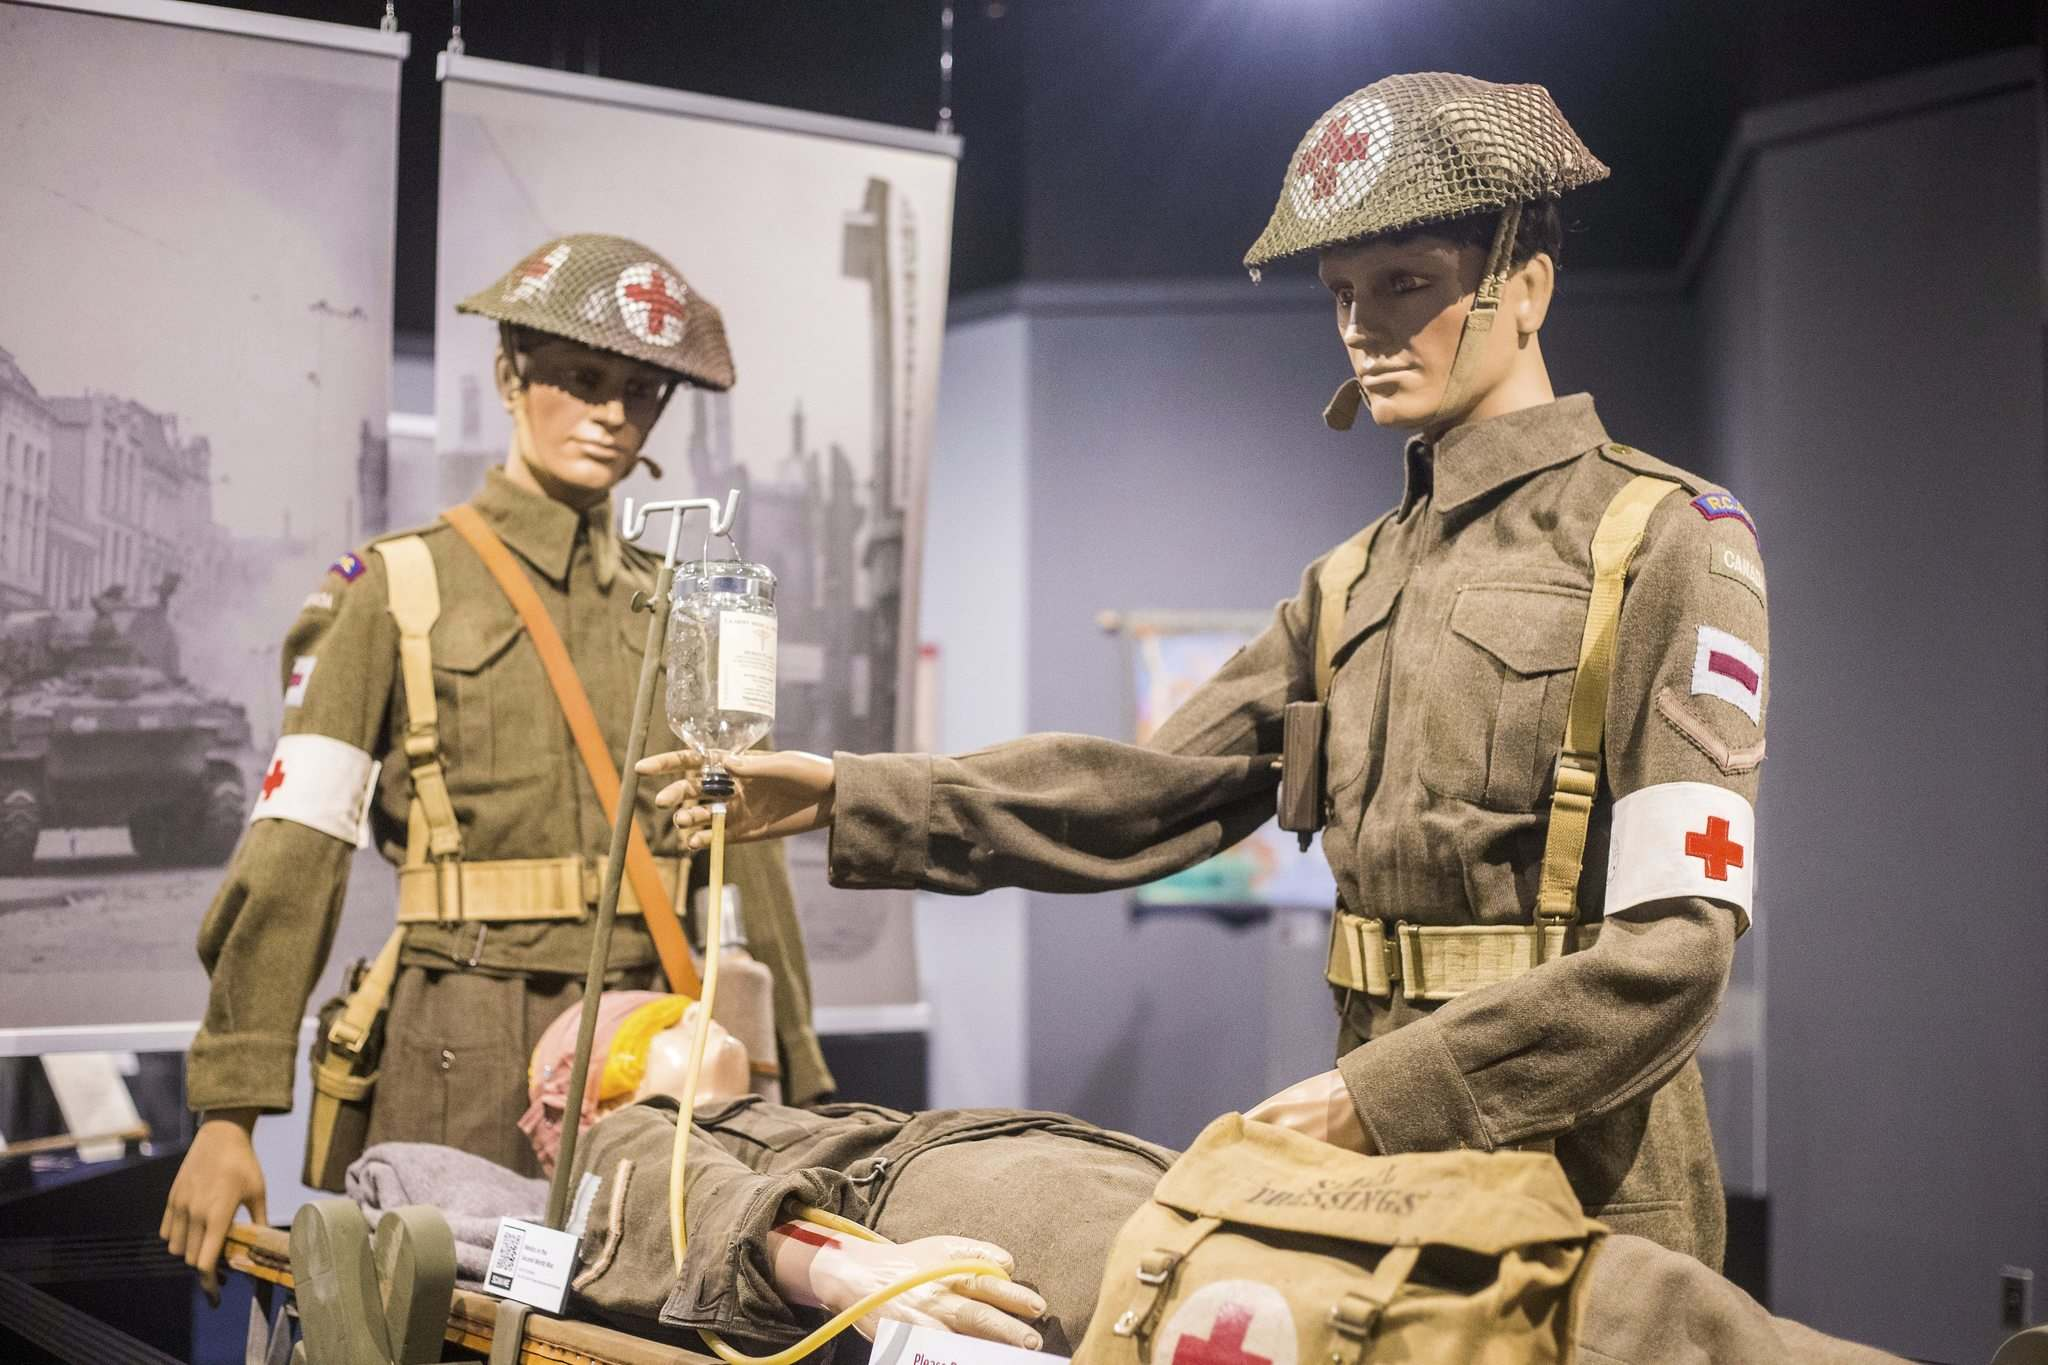 A display in Mennonites at War demonstrates the fact that pacifistic Mennonites often chose to become medics instead of taking more violent roles in the military. (Mikaela MacKenzie / Winnipeg Free Press)</p>